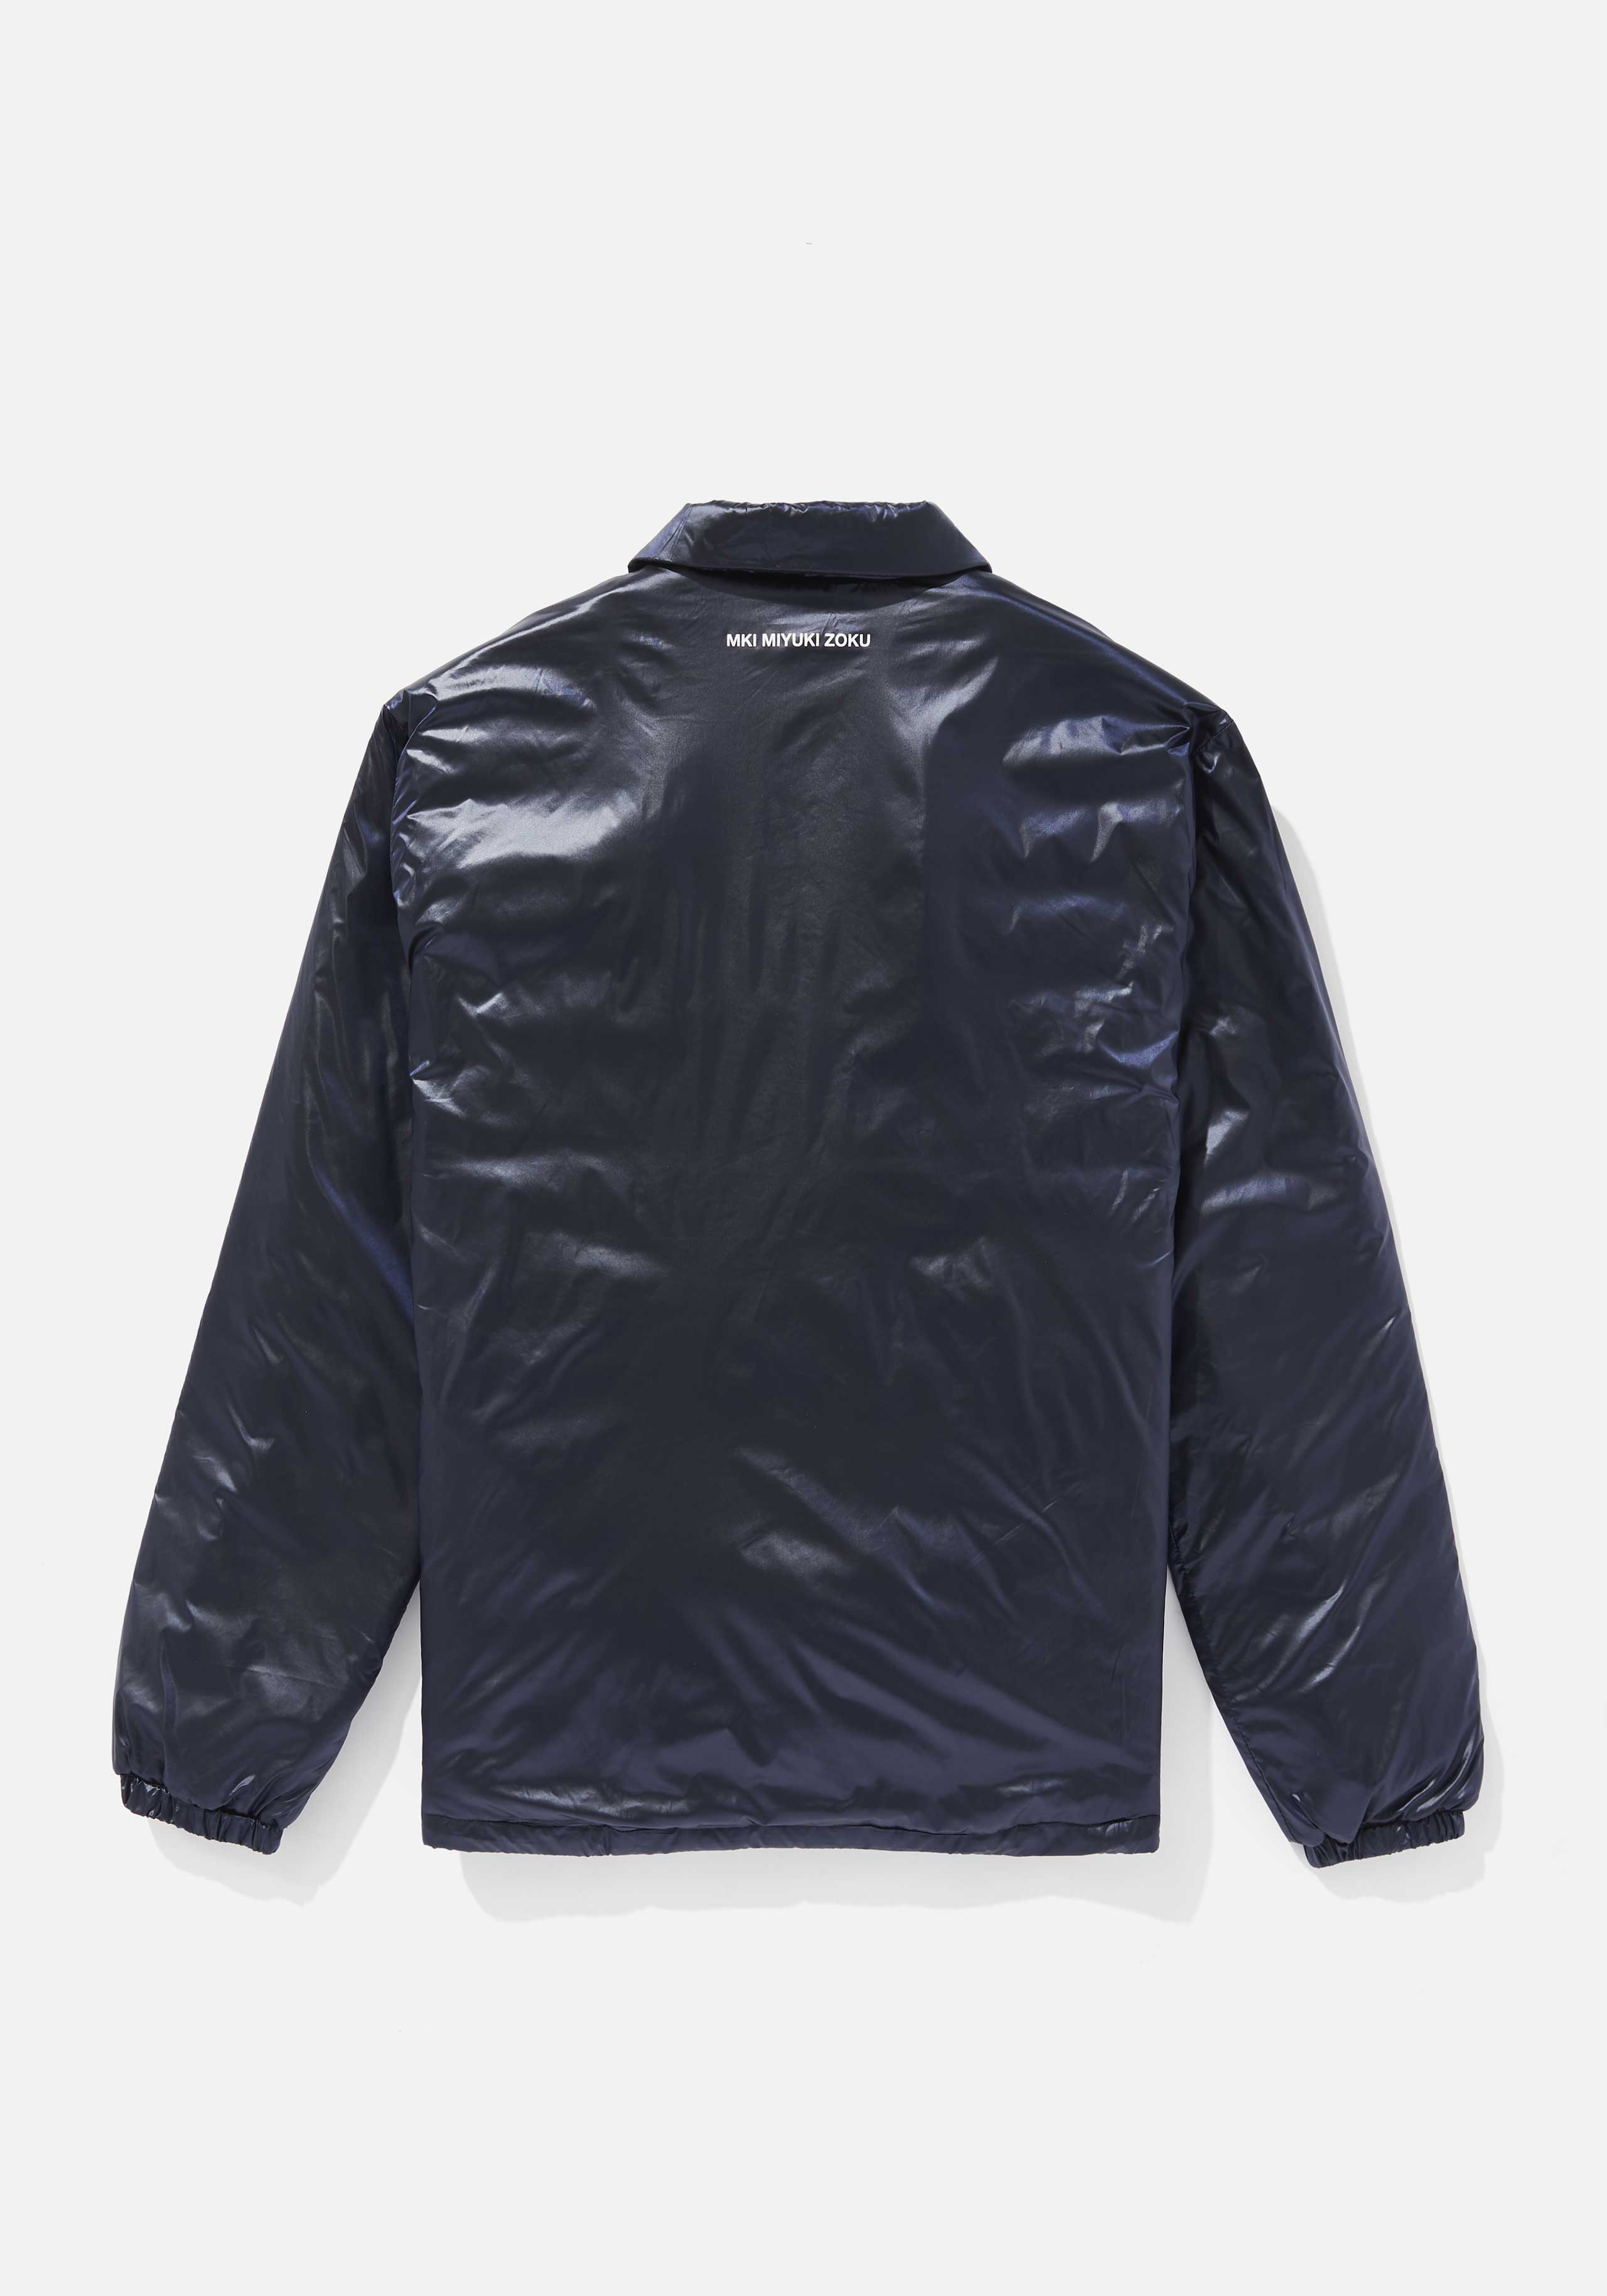 mki padded nylon coach jacket 2